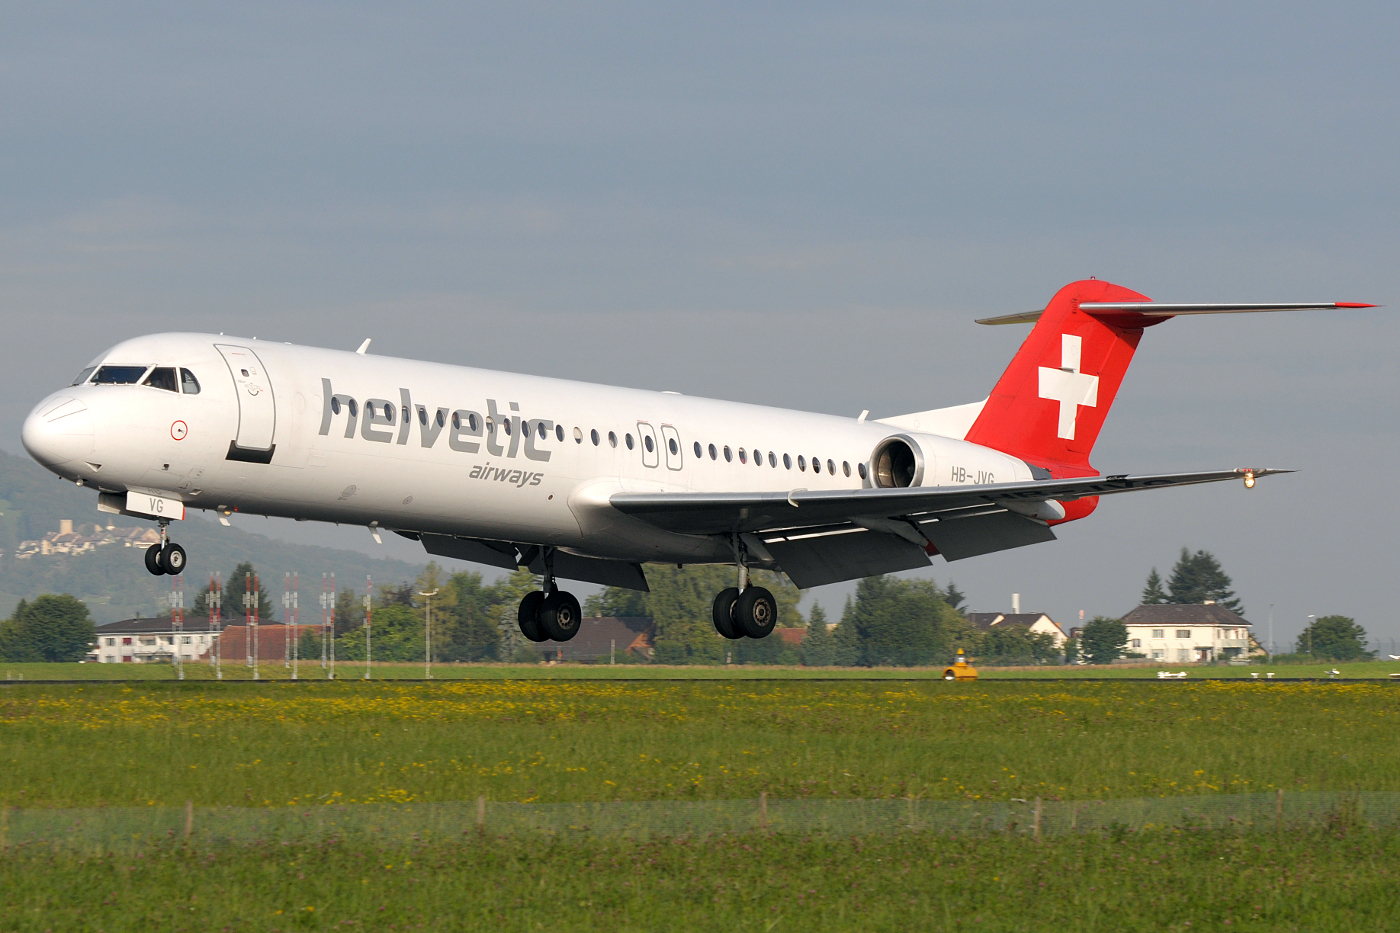 Airline Airways Helvetica (Helvetic Airways). sayt.2 officiel